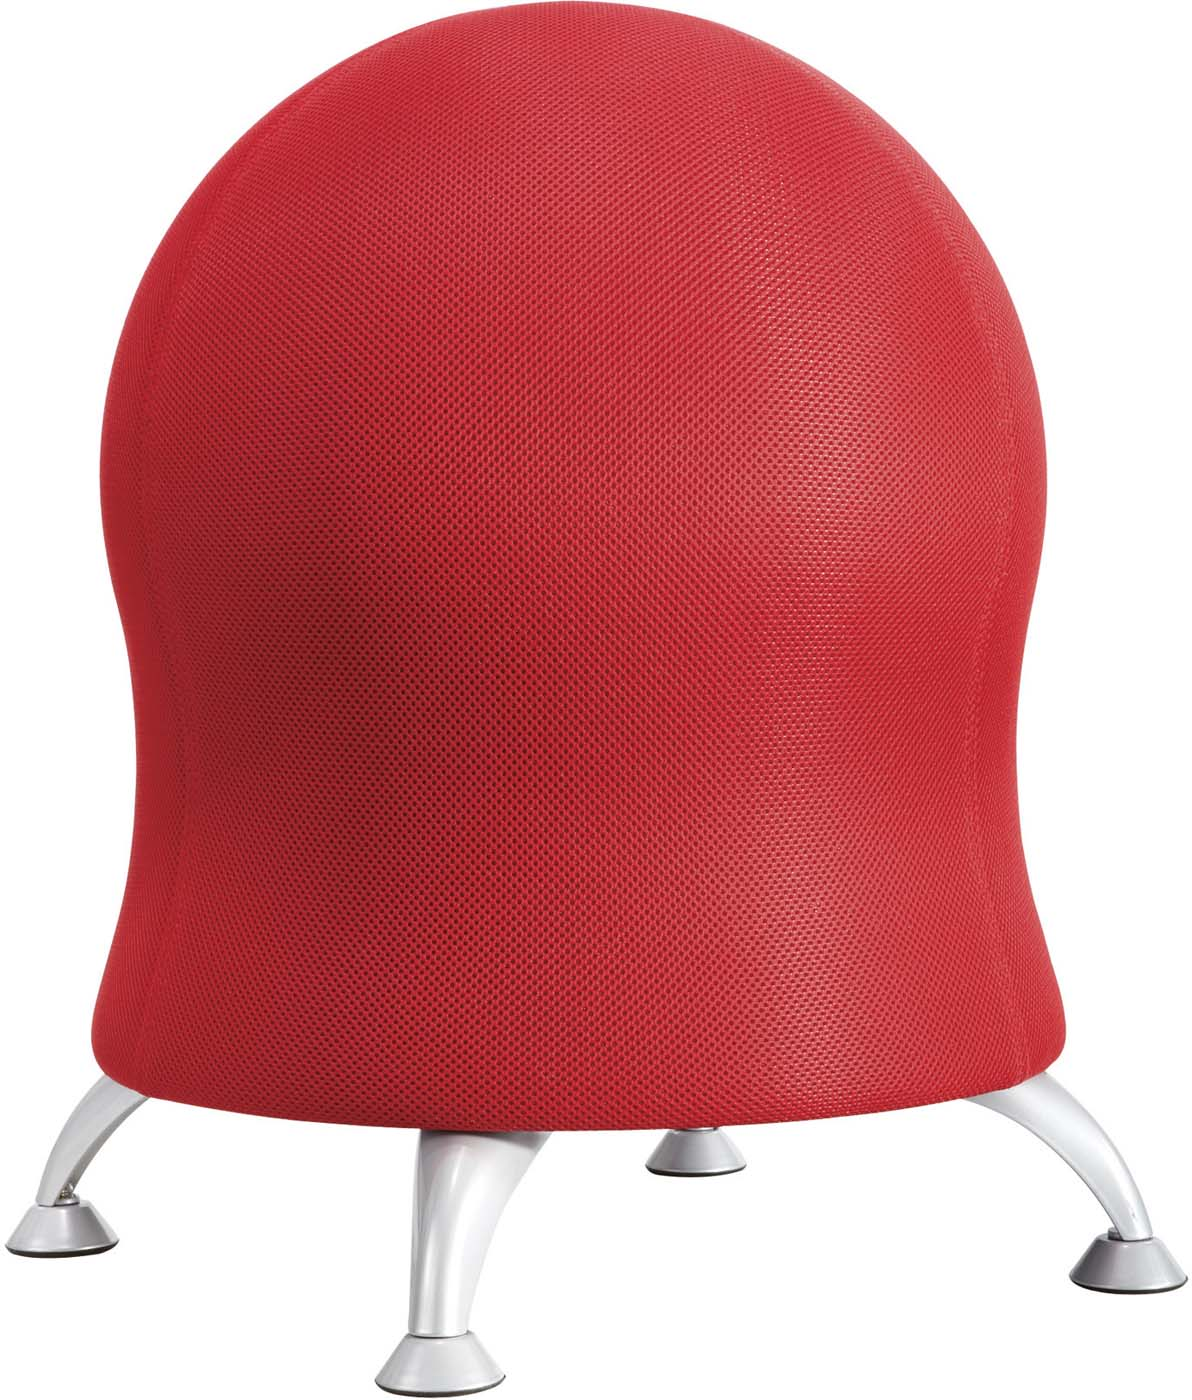 Safco Ball Chairs